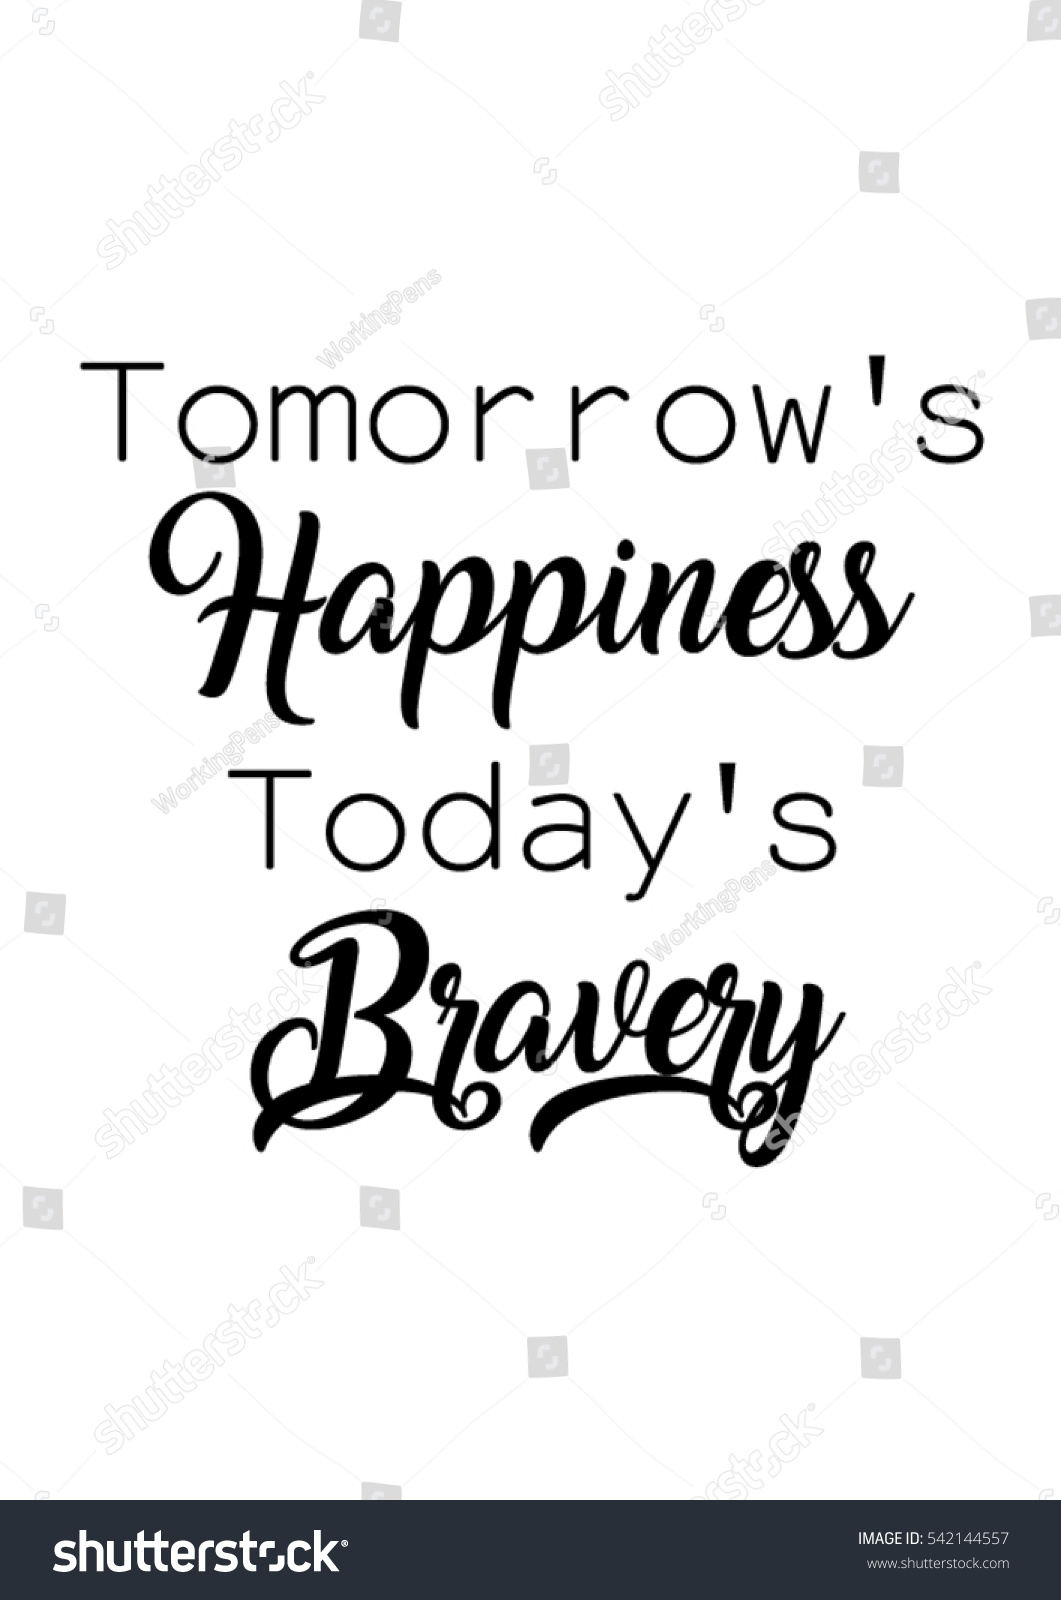 Quote For Today About Life Tomorrows Happiness Todays Bravery Quote Print Stock Vector